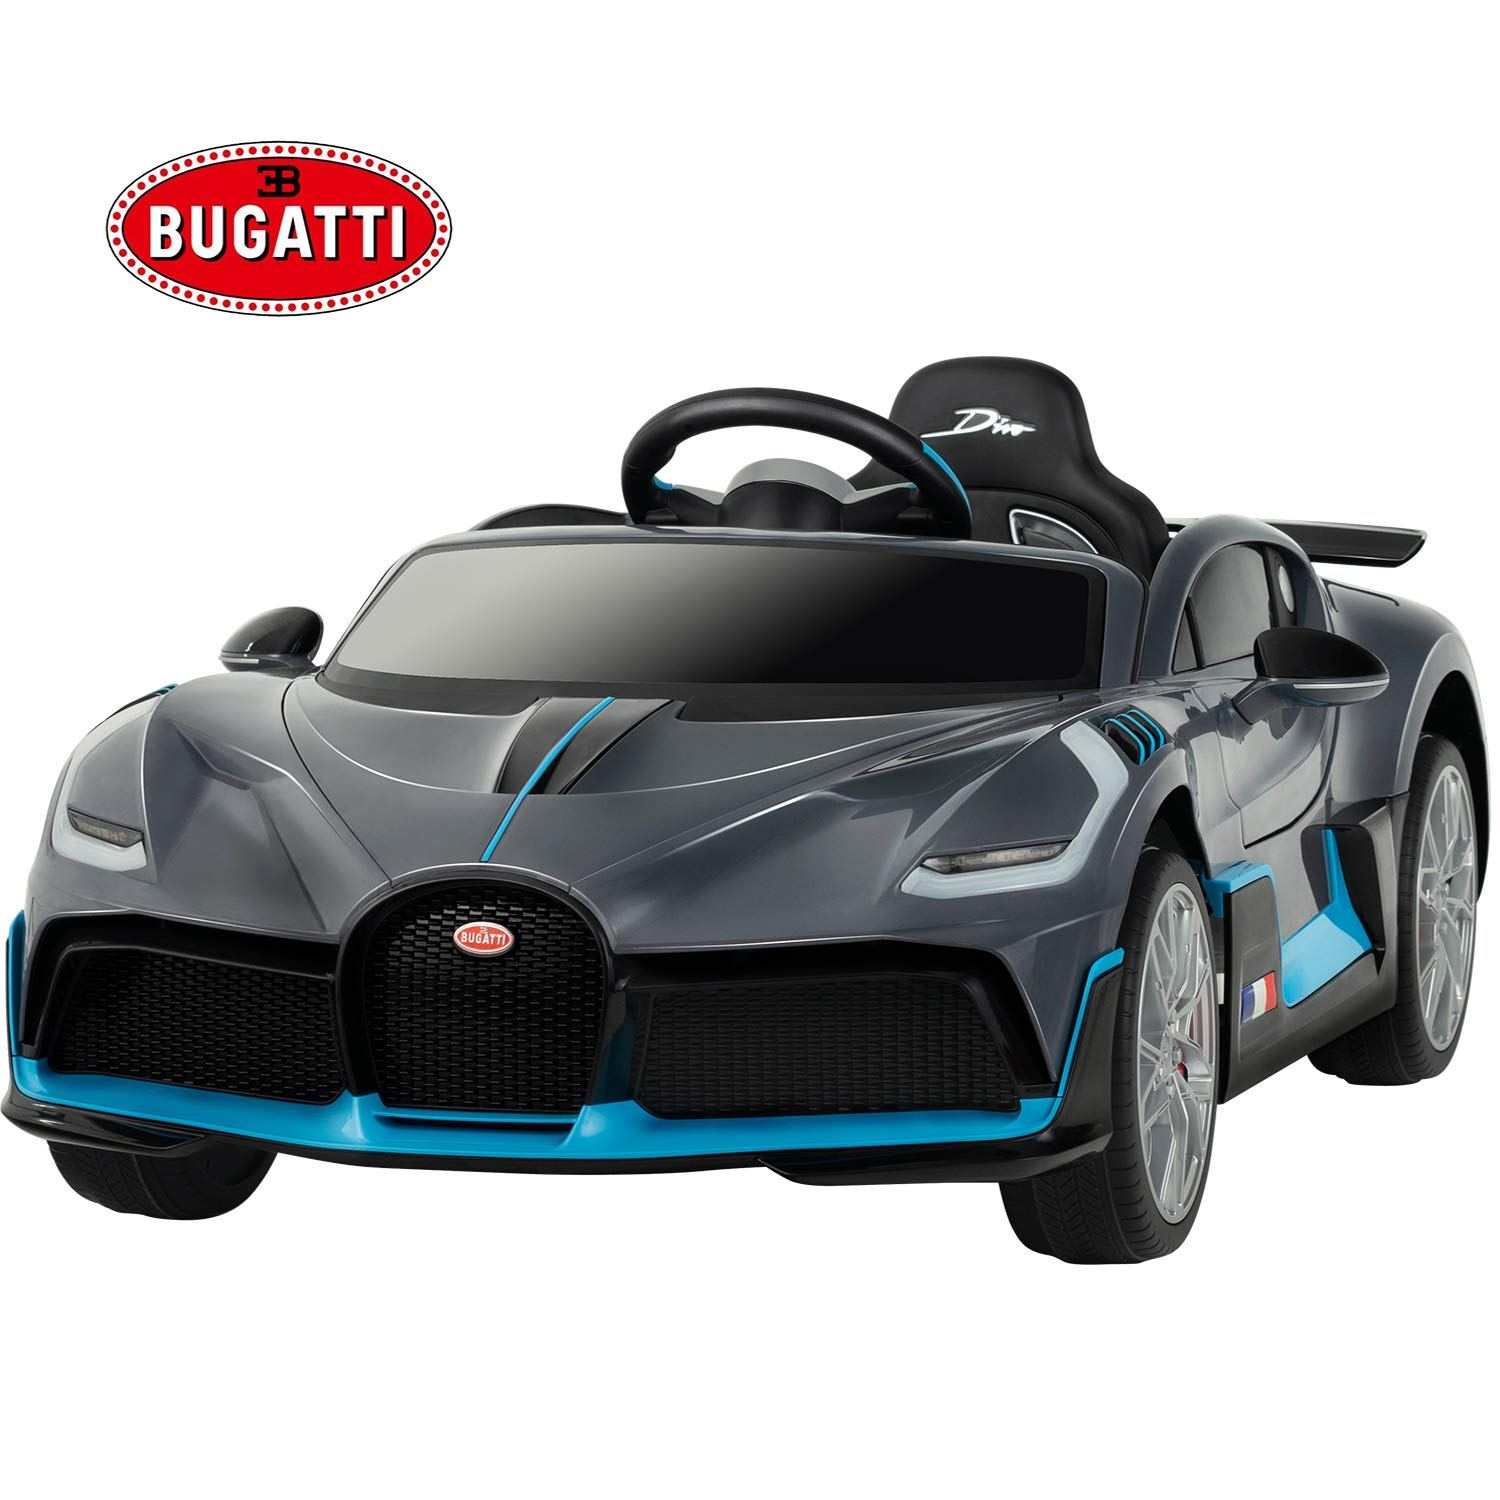 Uenjoy 12V Licensed Bugatti Divo Kids Ride On Car Electric Cars Motorized Vehicles for Kids, with Remote Control, Music, Horn, Spring Suspension, Safety Lock, Gray